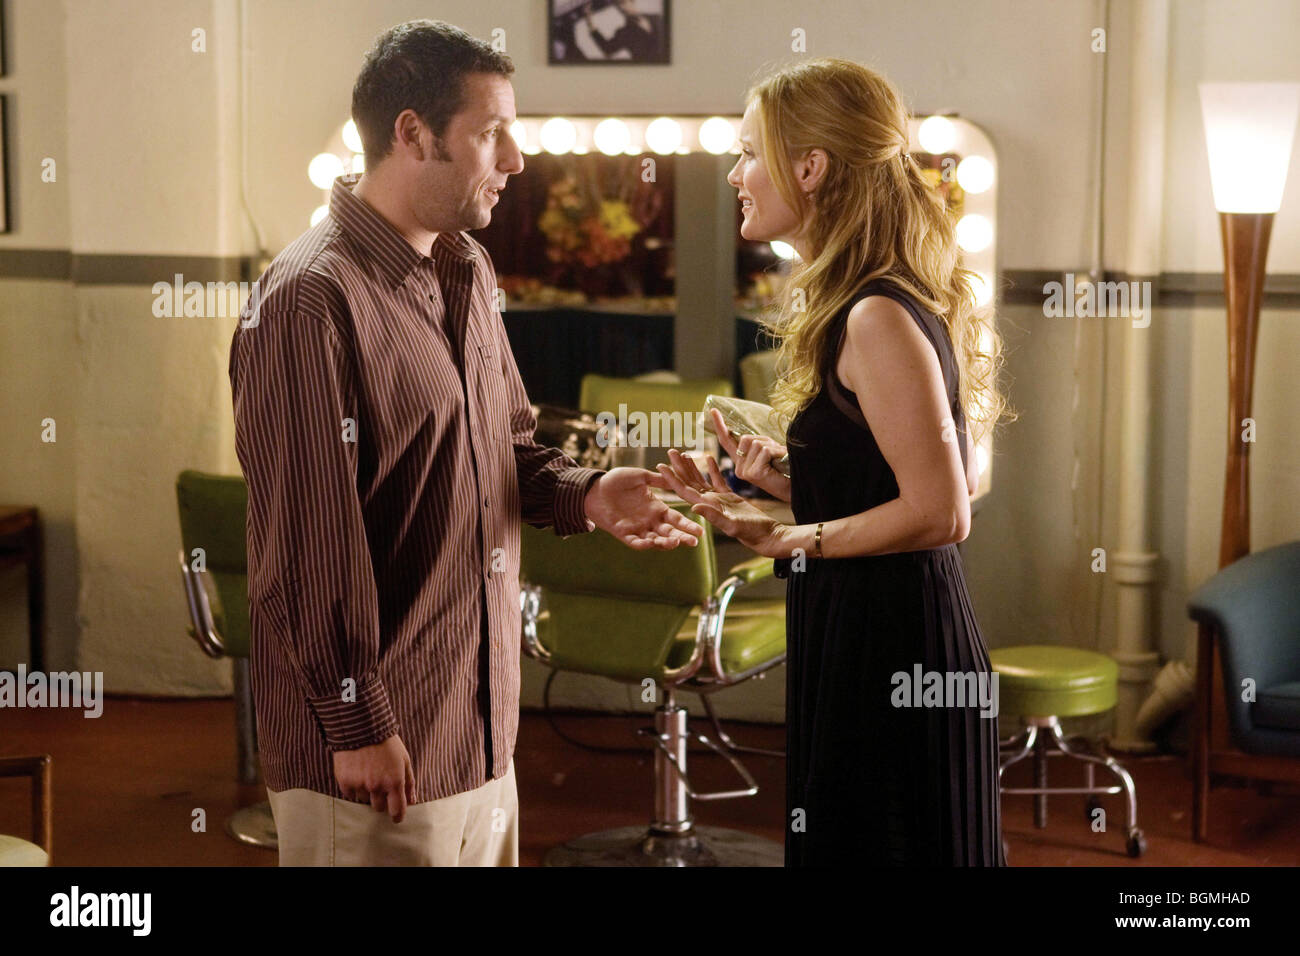 Funny People Year : 2009 Director : Judd Apatow Adam Sandler, Leslie Mann - Stock Image